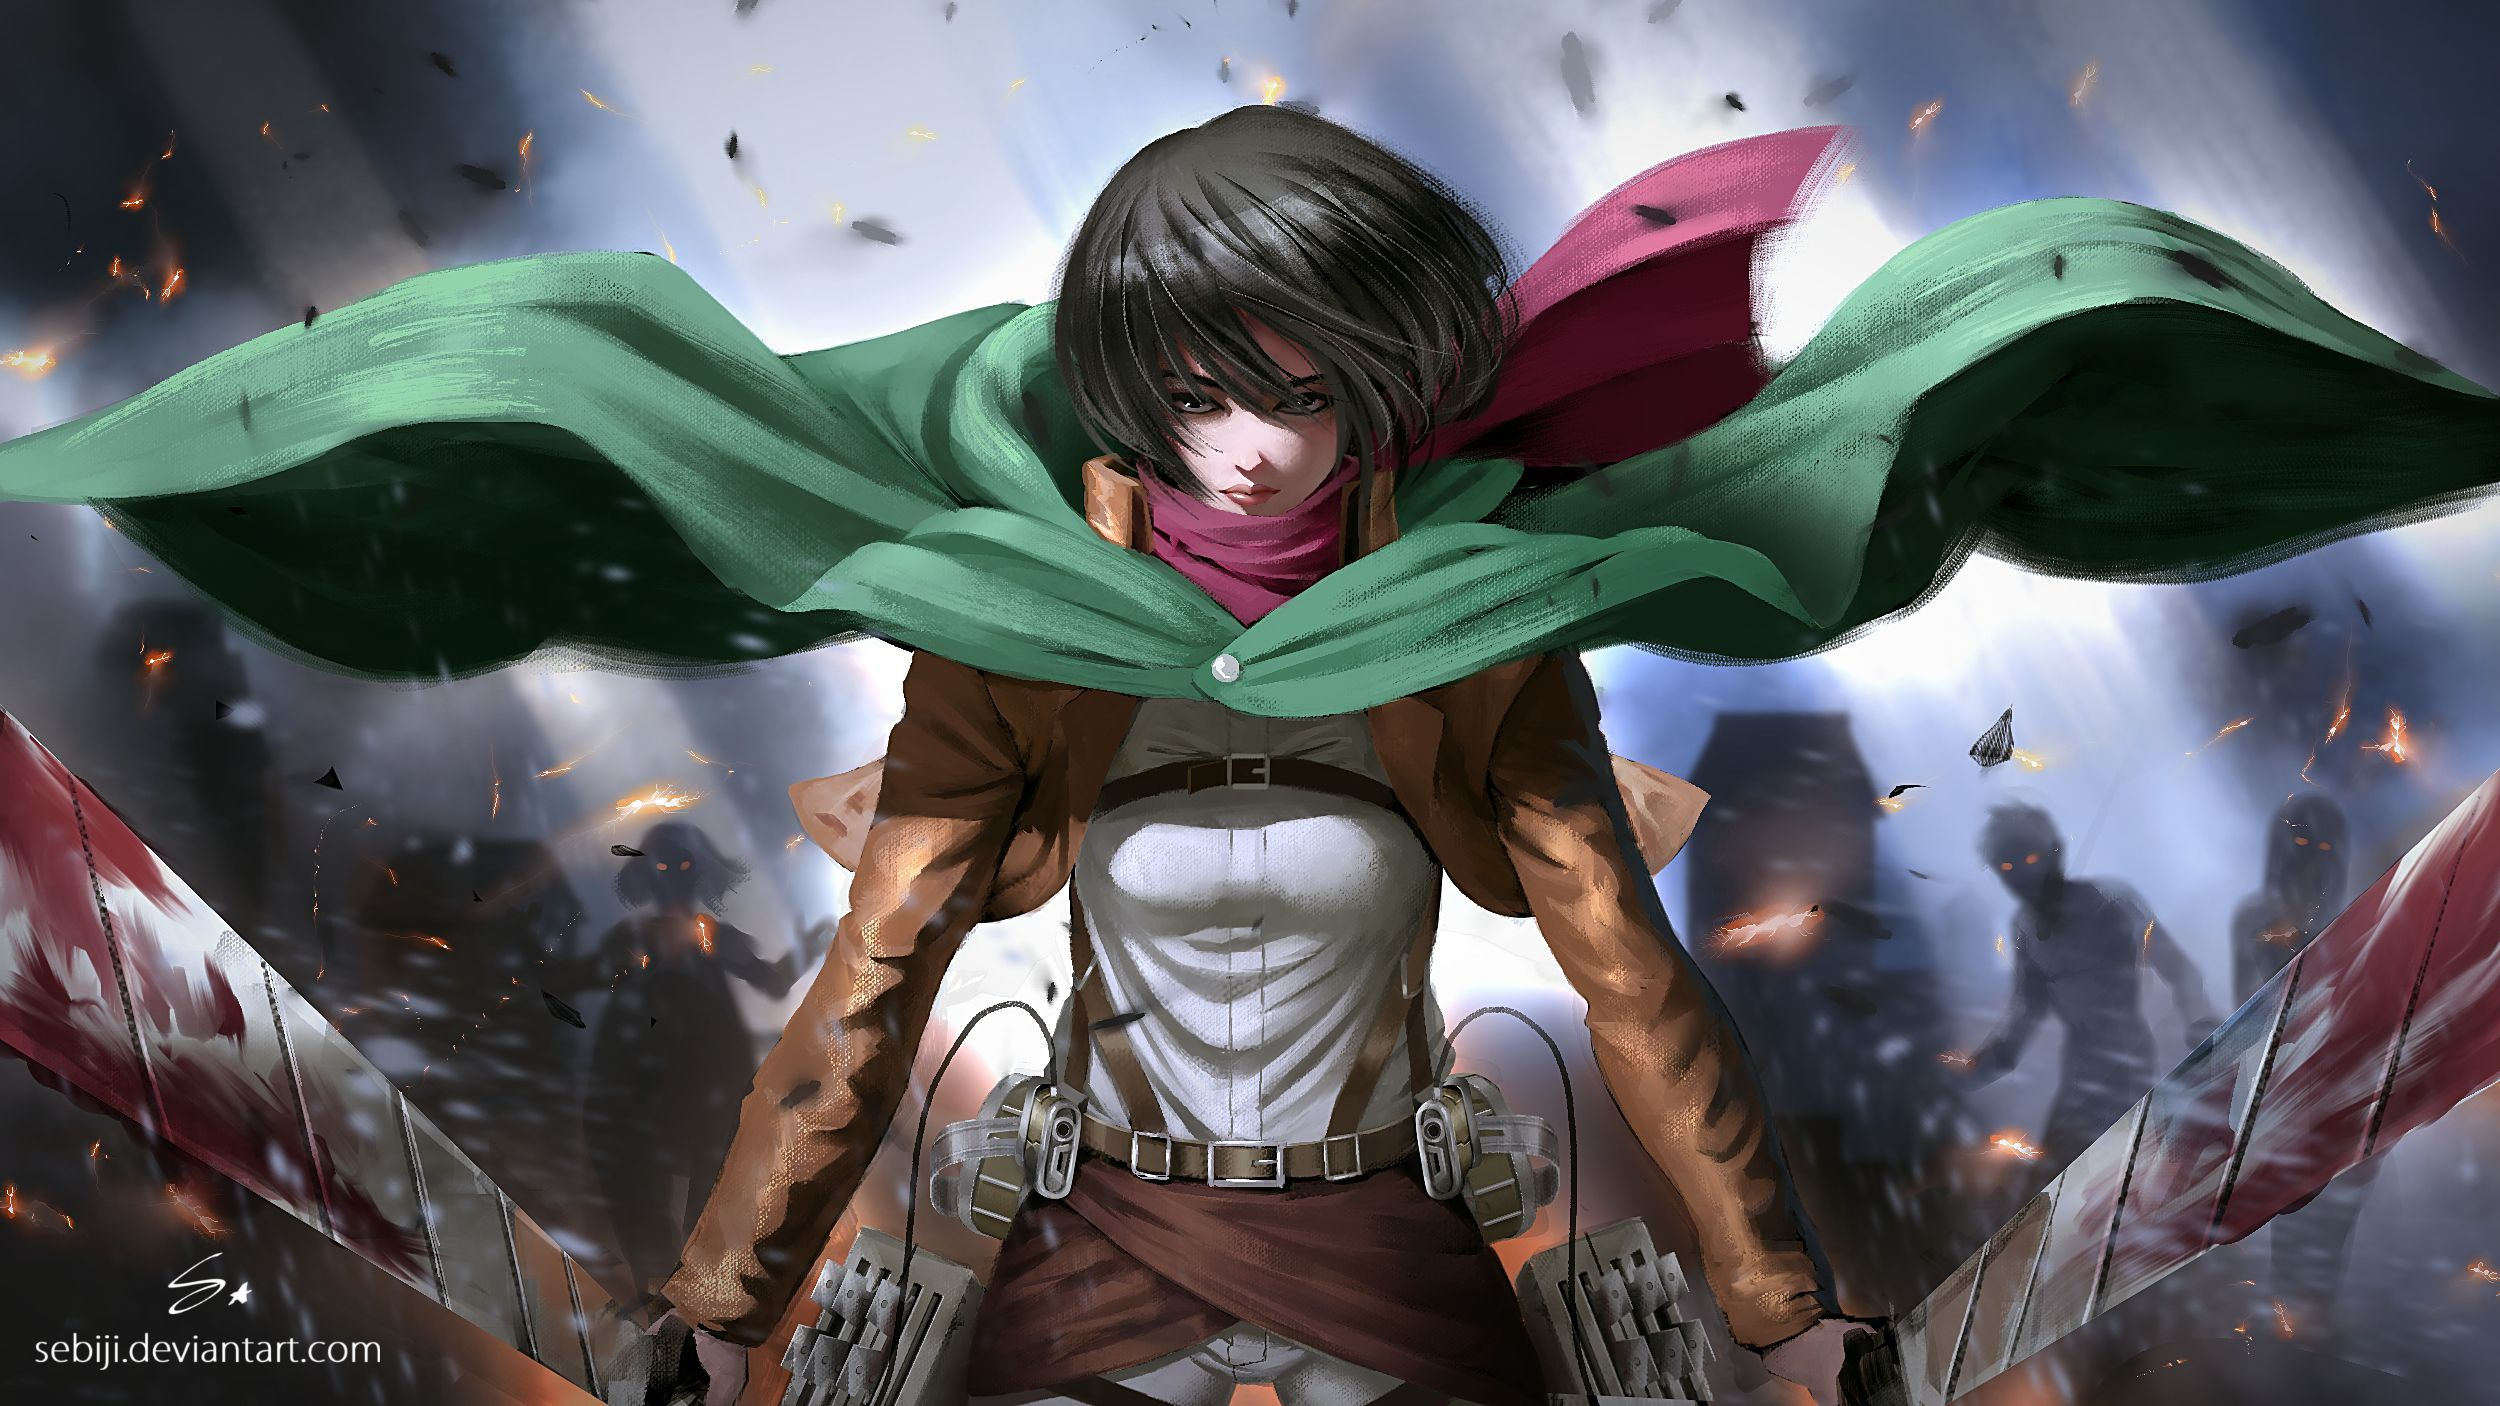 Make it easy with our tips on application. Anime Attack On Titan Mikasa Wallpapers - Wallpaper Cave